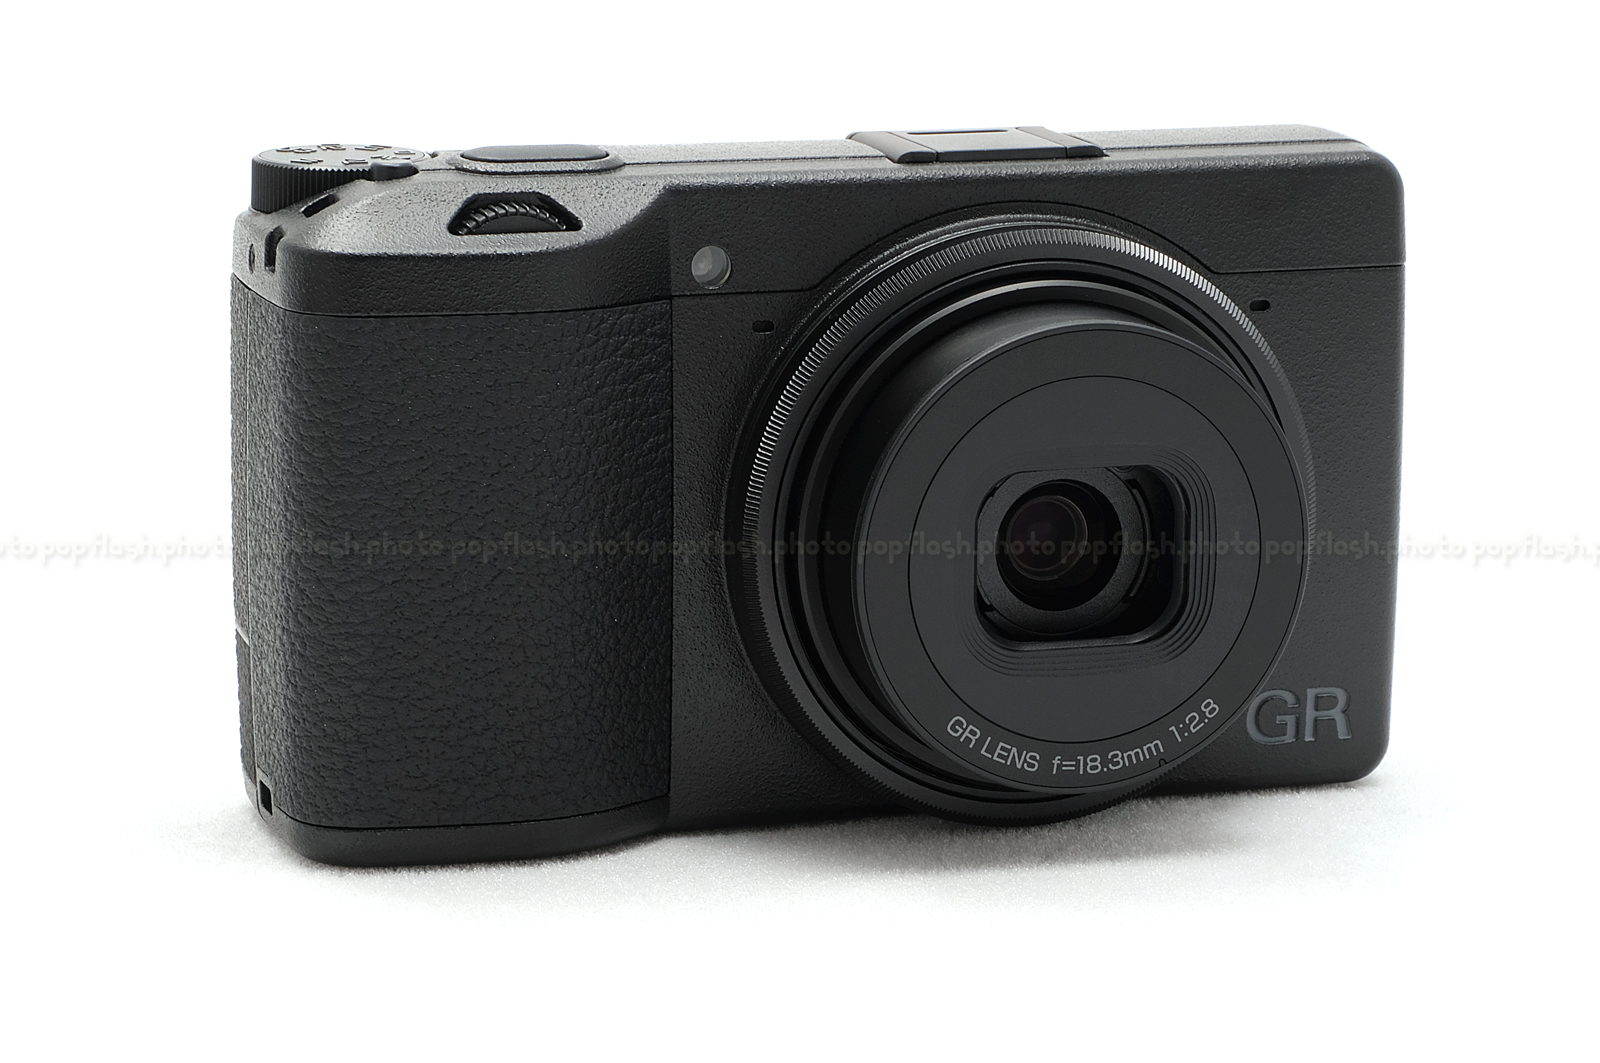 RICOH GR III DIGITAL CAMERA #15039 USA NEW - NOW WITH BJ-11 CHARGER & EXTRA  DB-110 BATTERY!